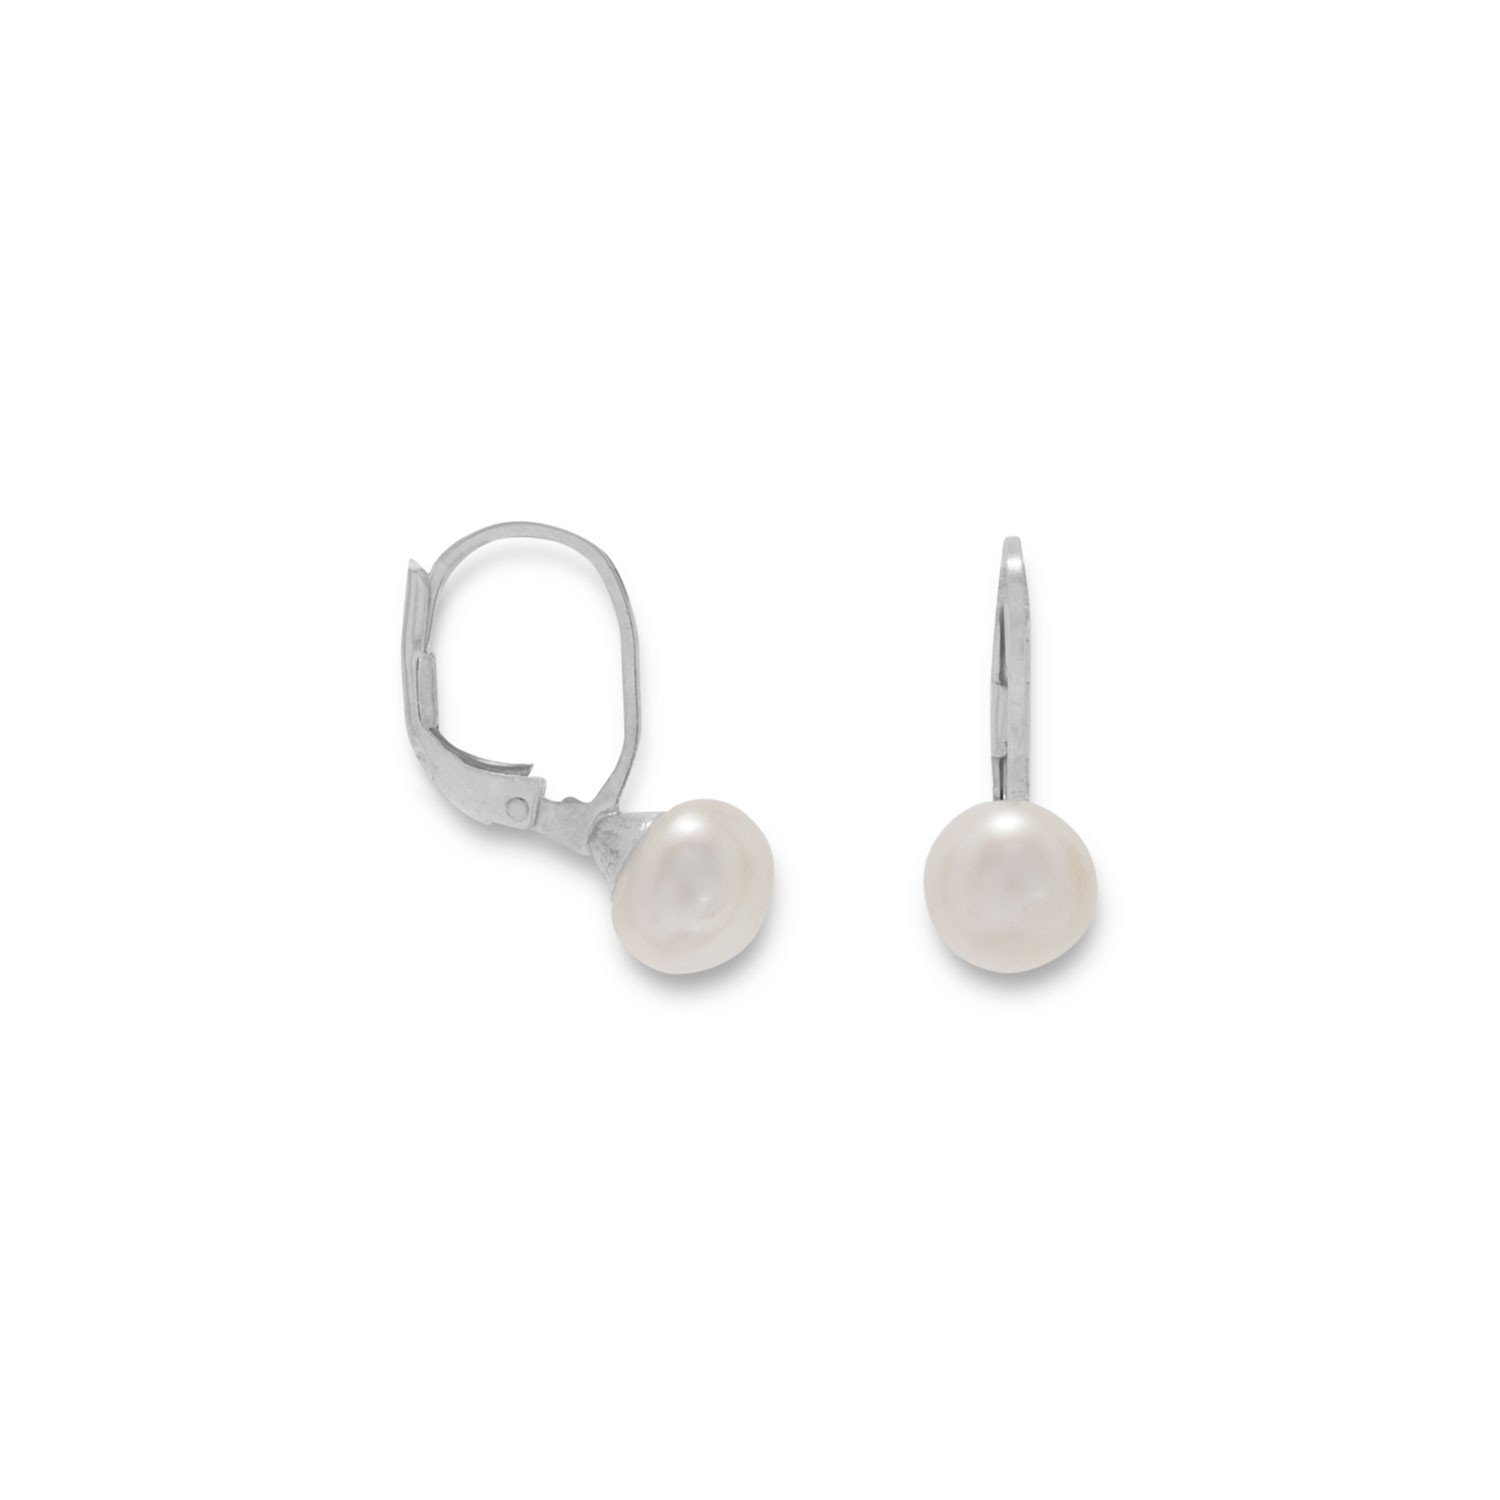 6mm White Cultured Freshwater Pearl on Lever Earrings